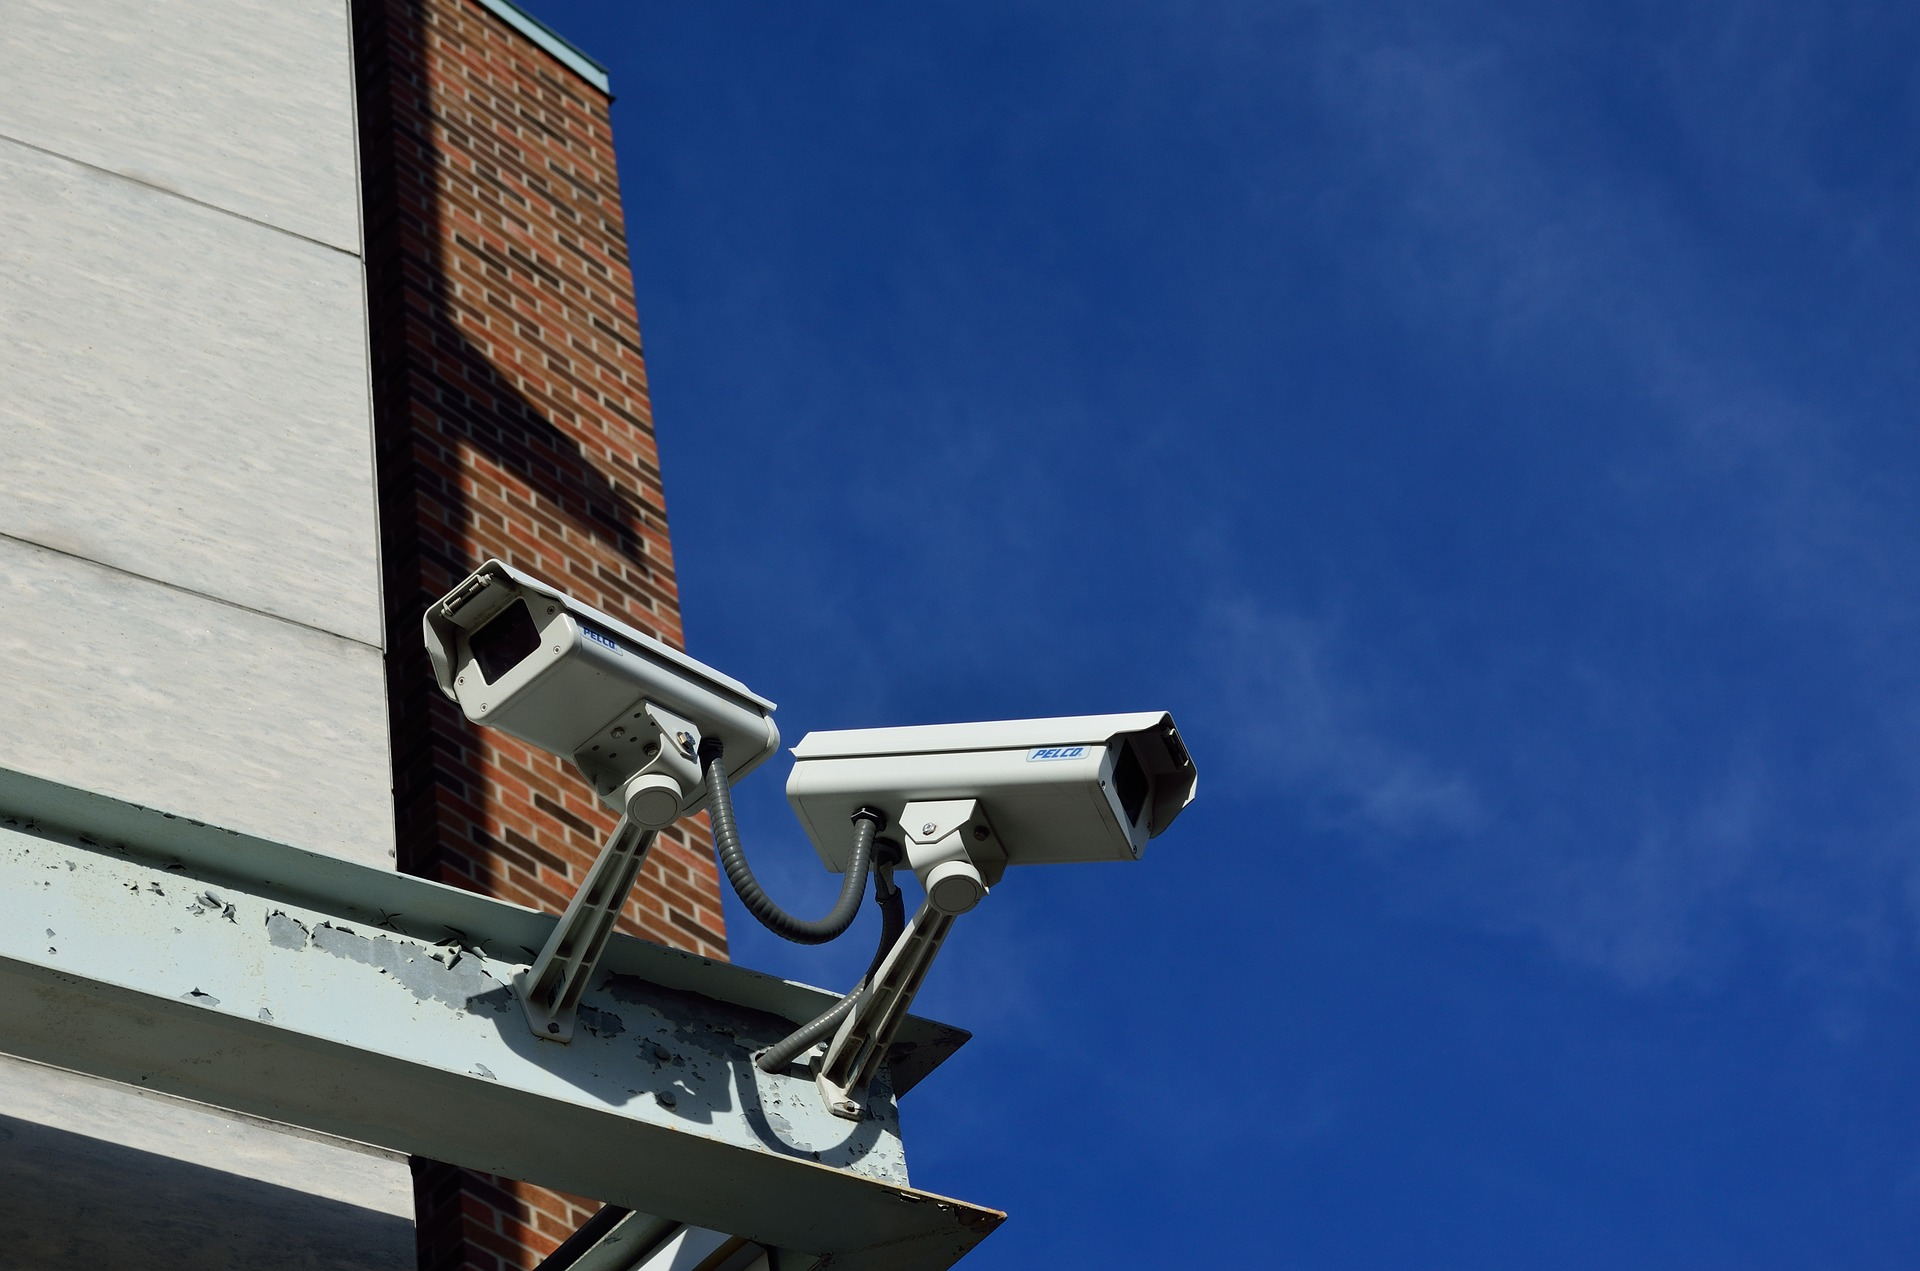 How to Hack Security Cameras around the world